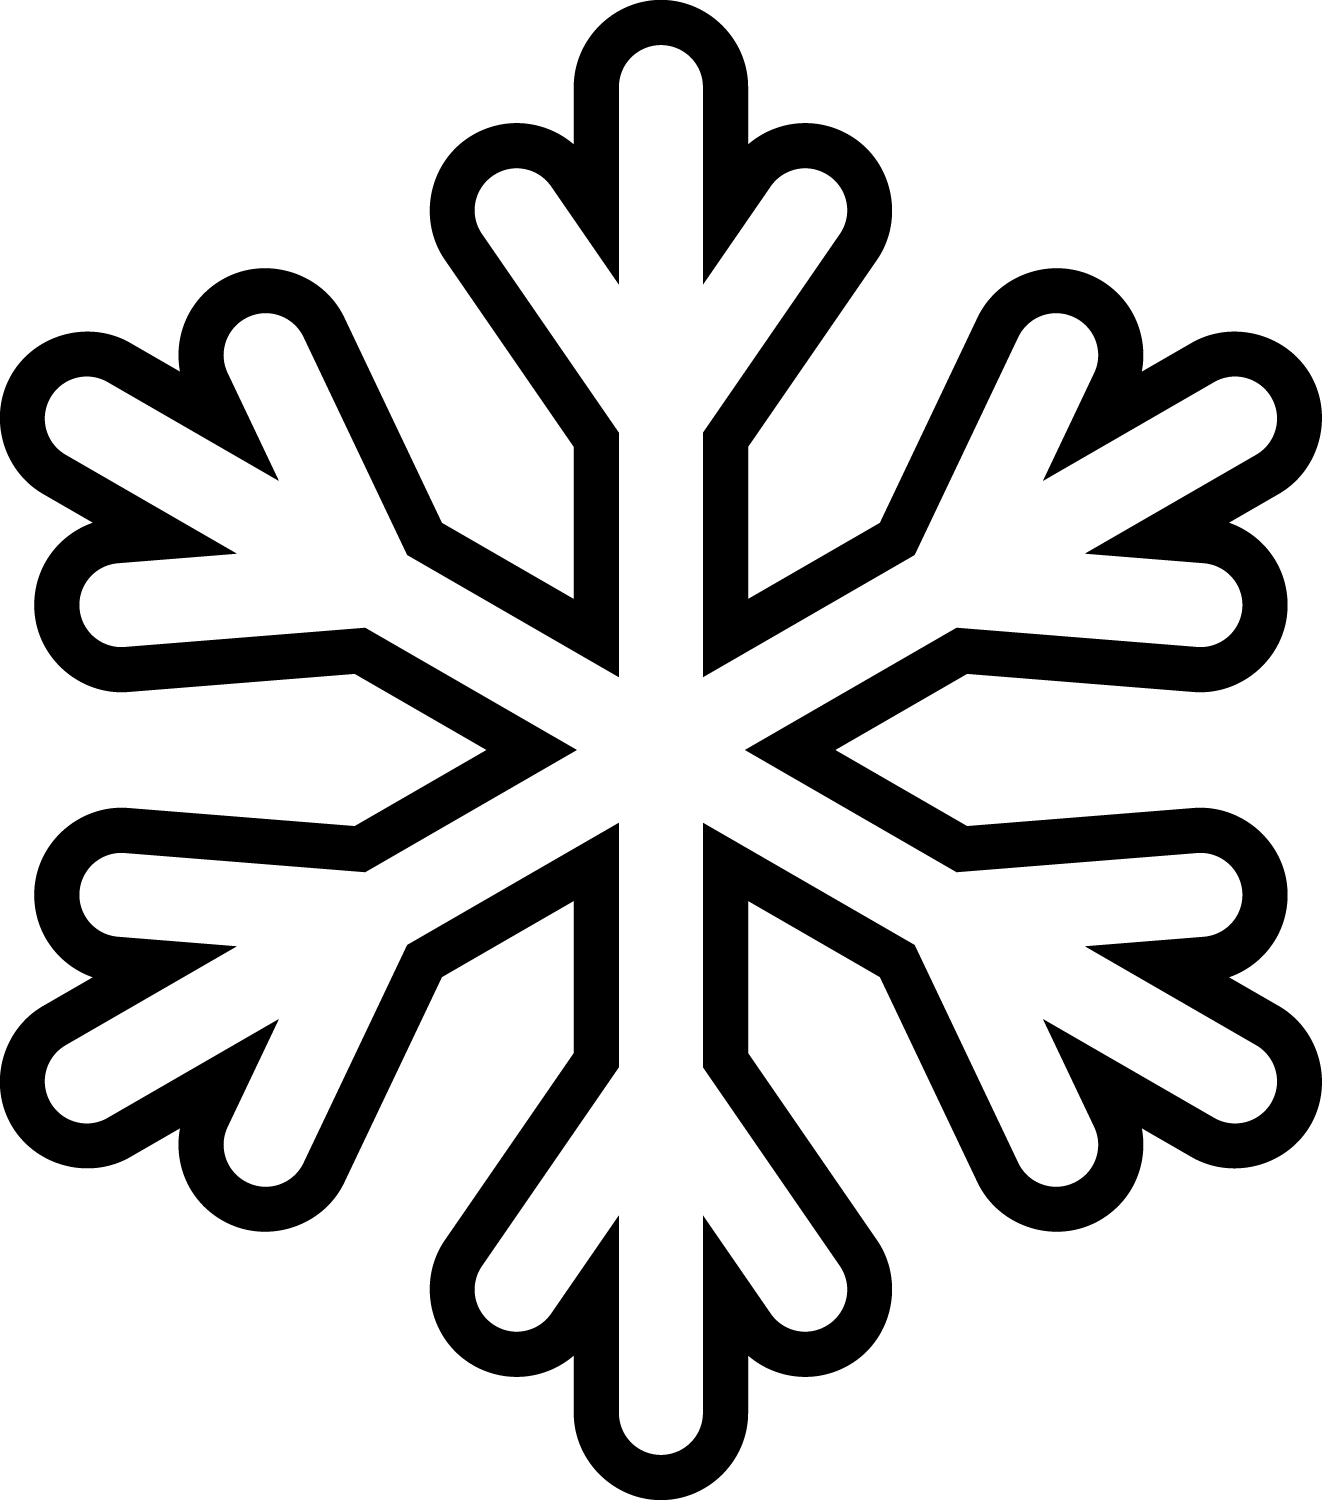 Snowflake clipart black picture freeuse snowflake-clipart-outline-xigKKLE5T.png.cf.png (1322×1500) | Diy ... picture freeuse